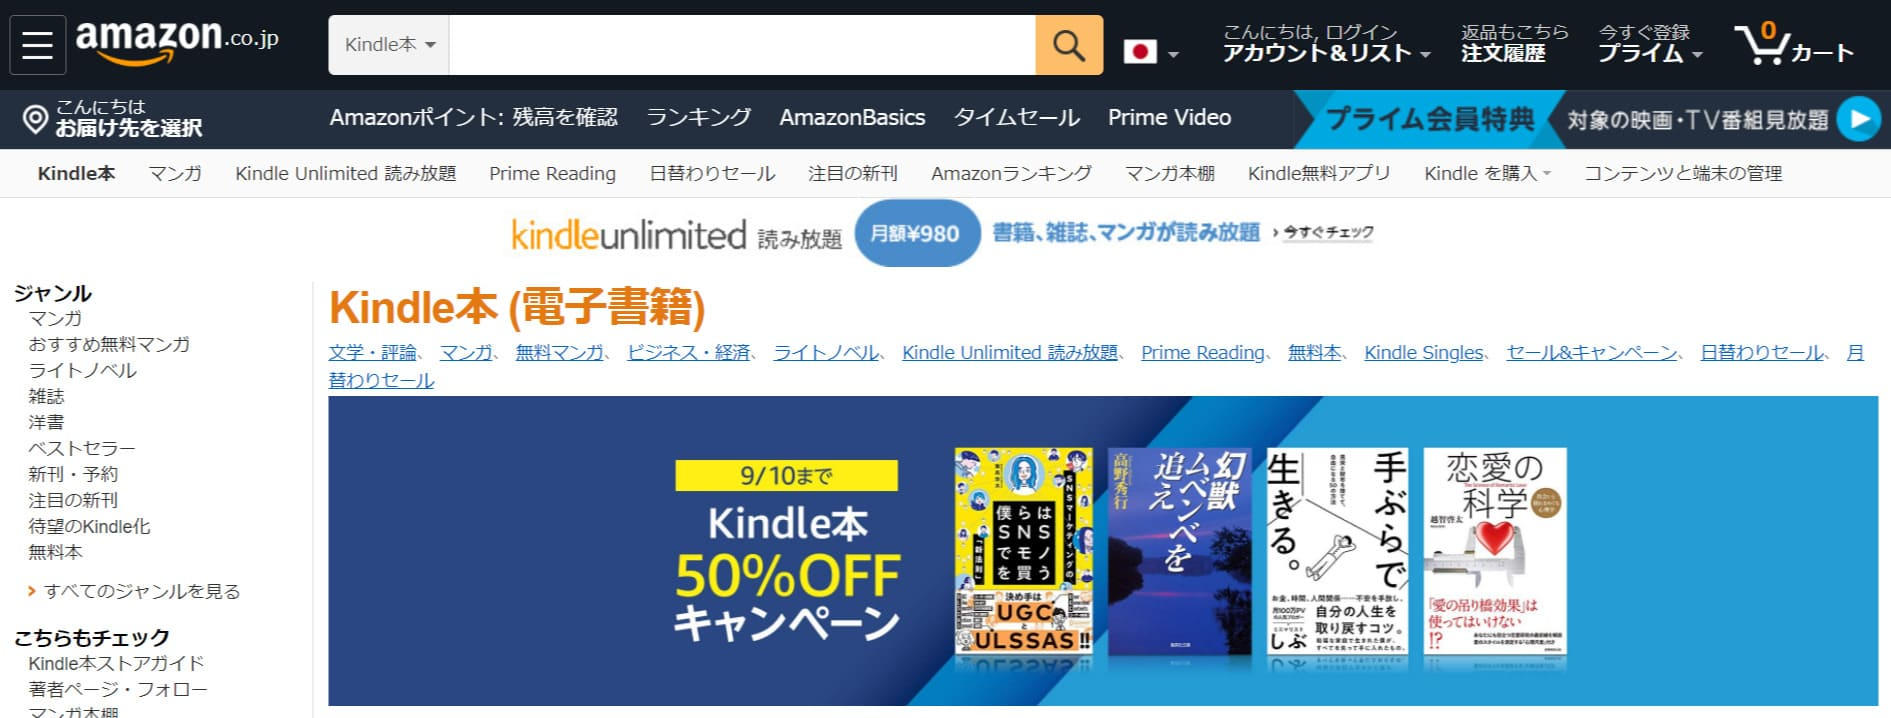 Kindleストアの概要